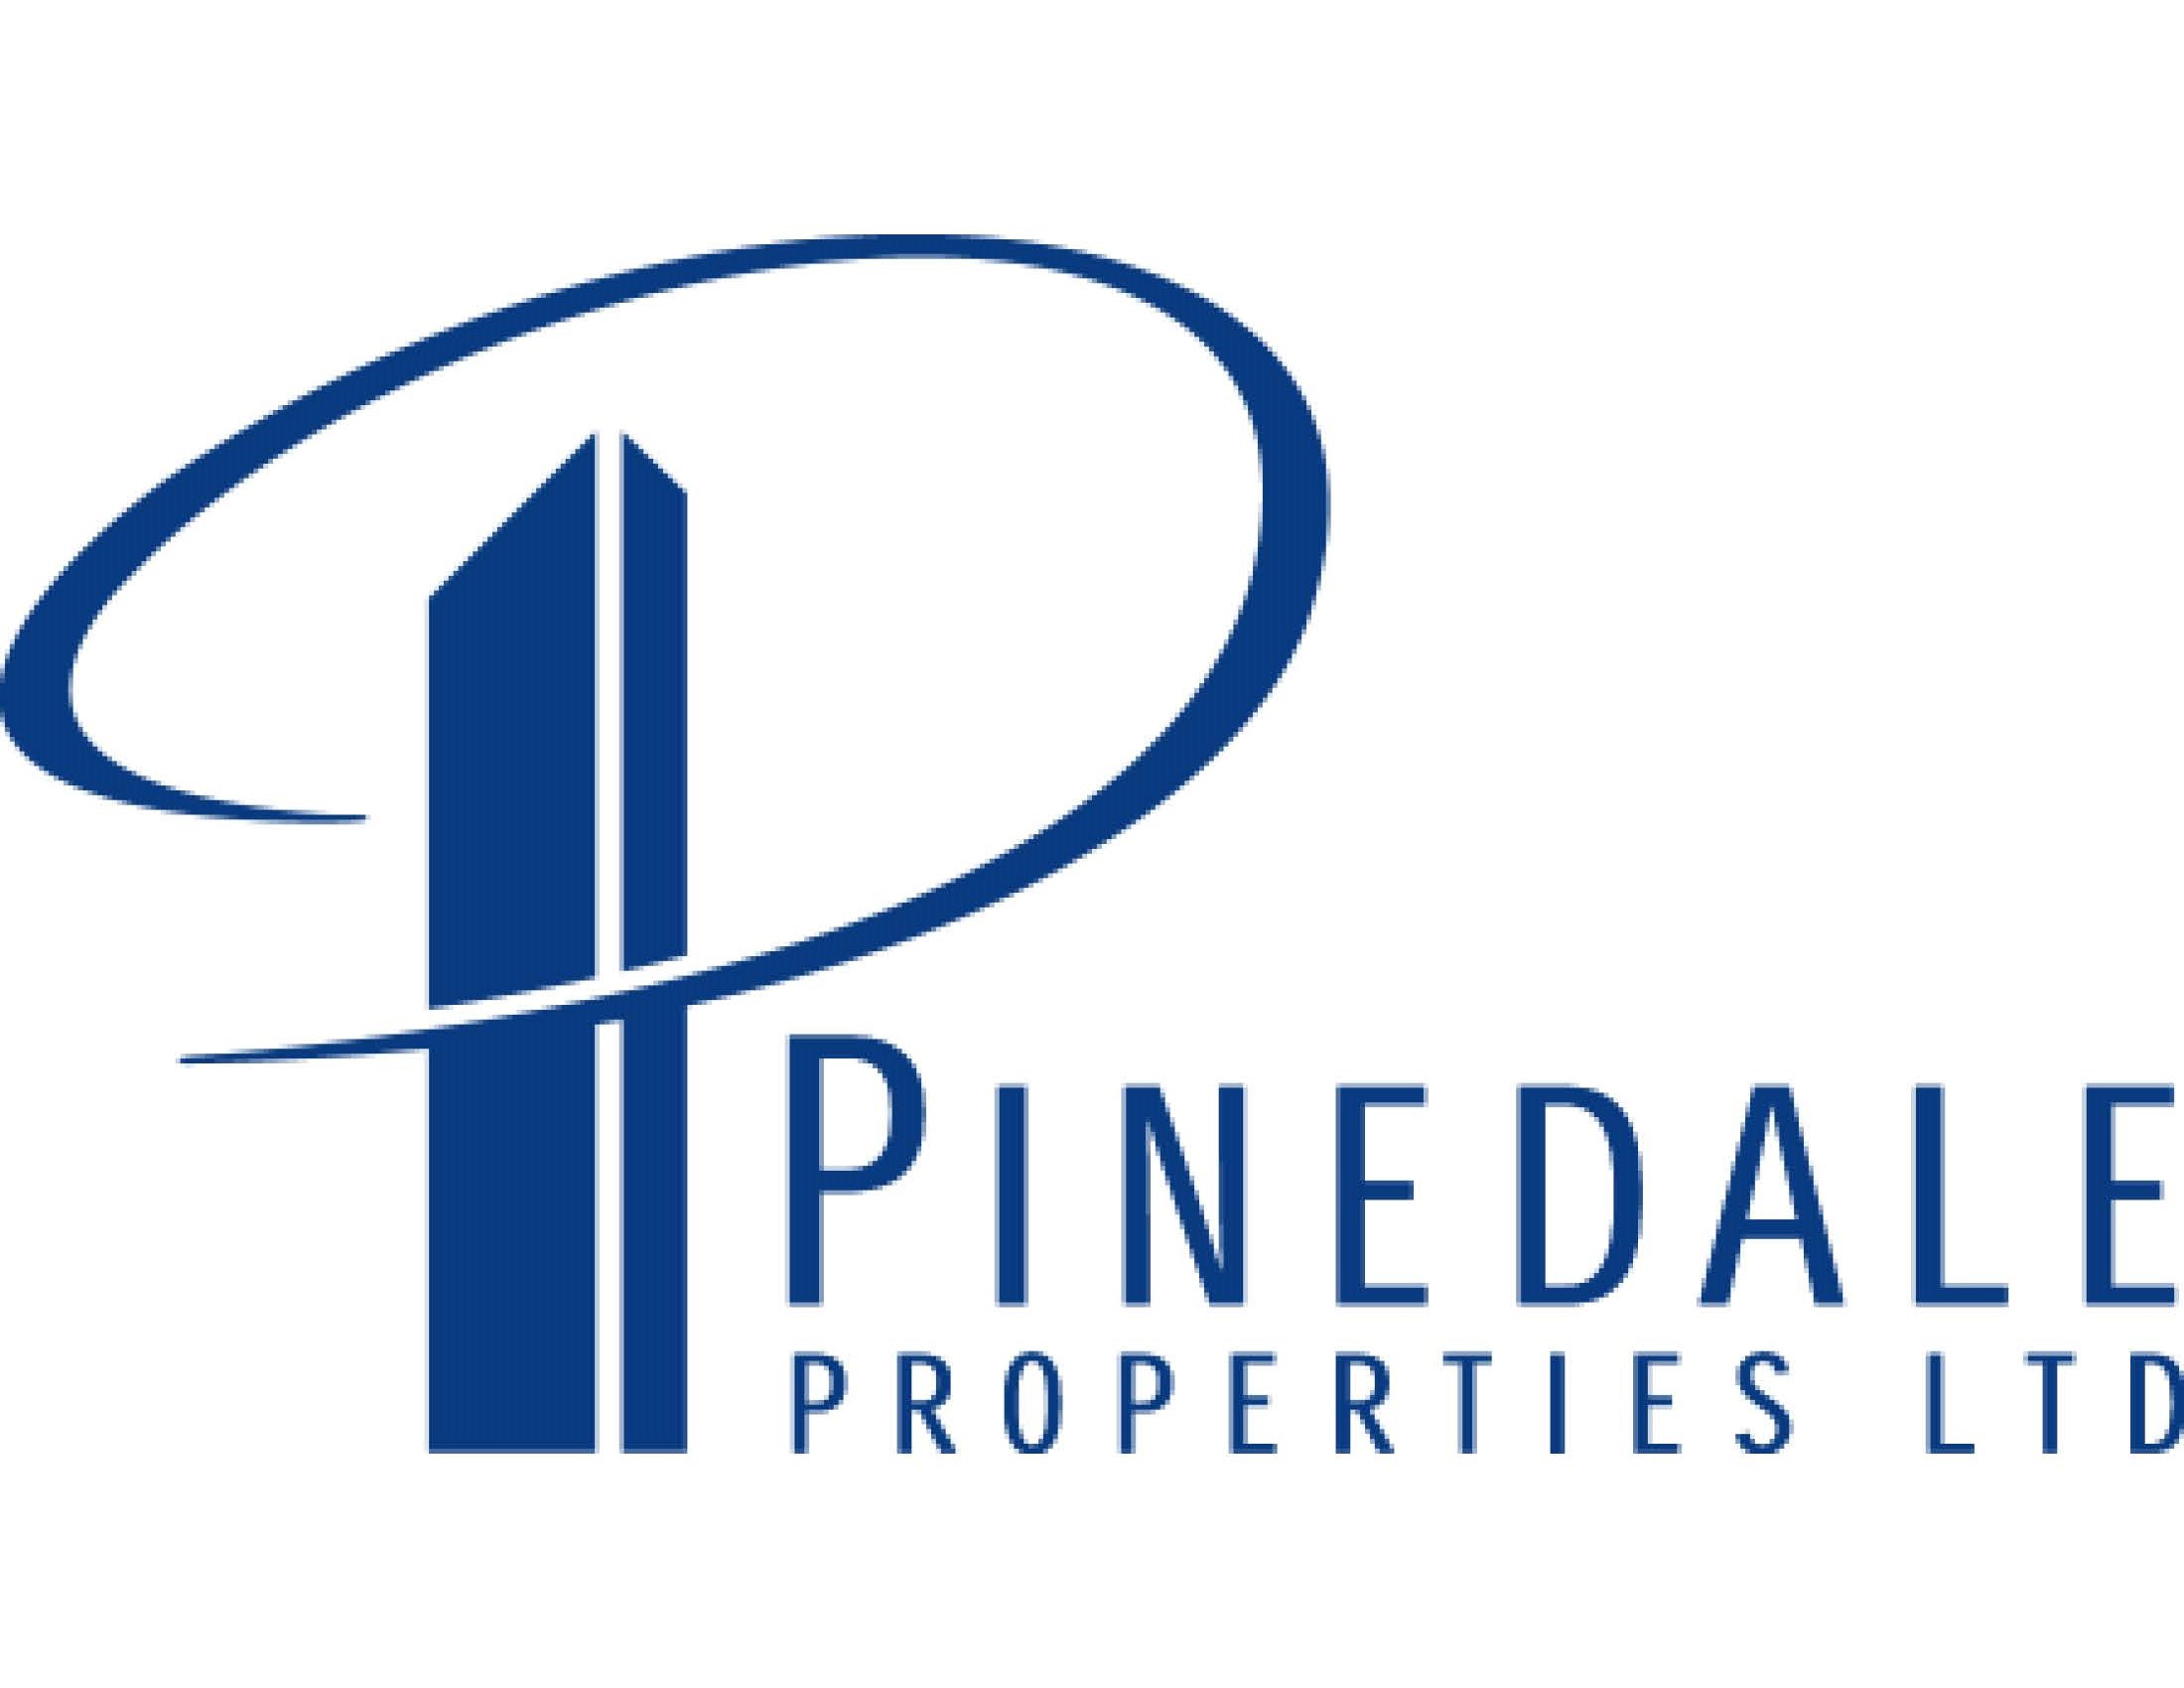 Pinedale Properties LTD